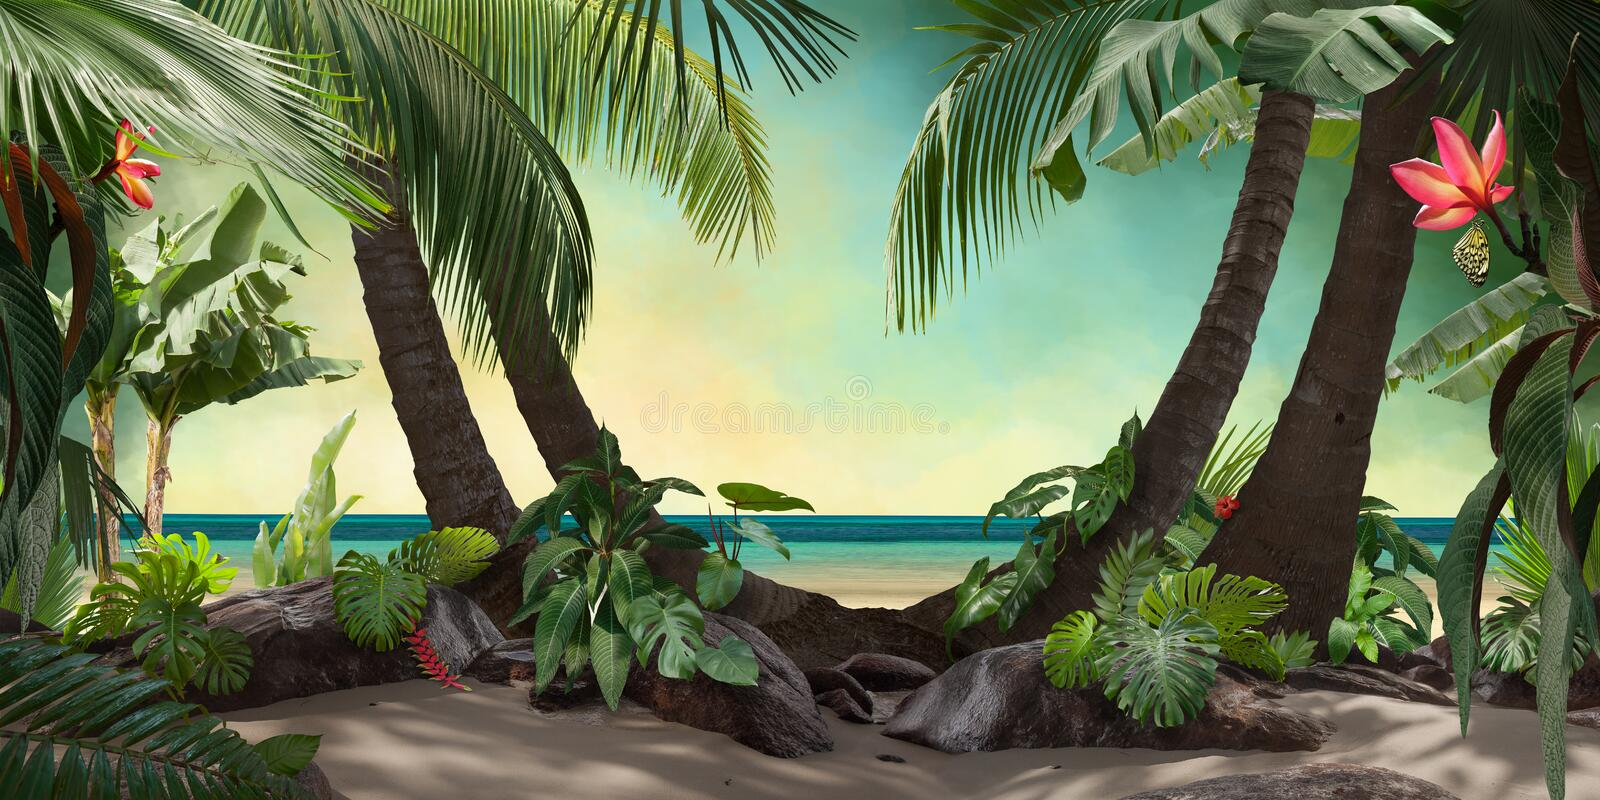 Beautiful beach lagoon view with palm trees and tropical leaves. Can be used as background vector illustration